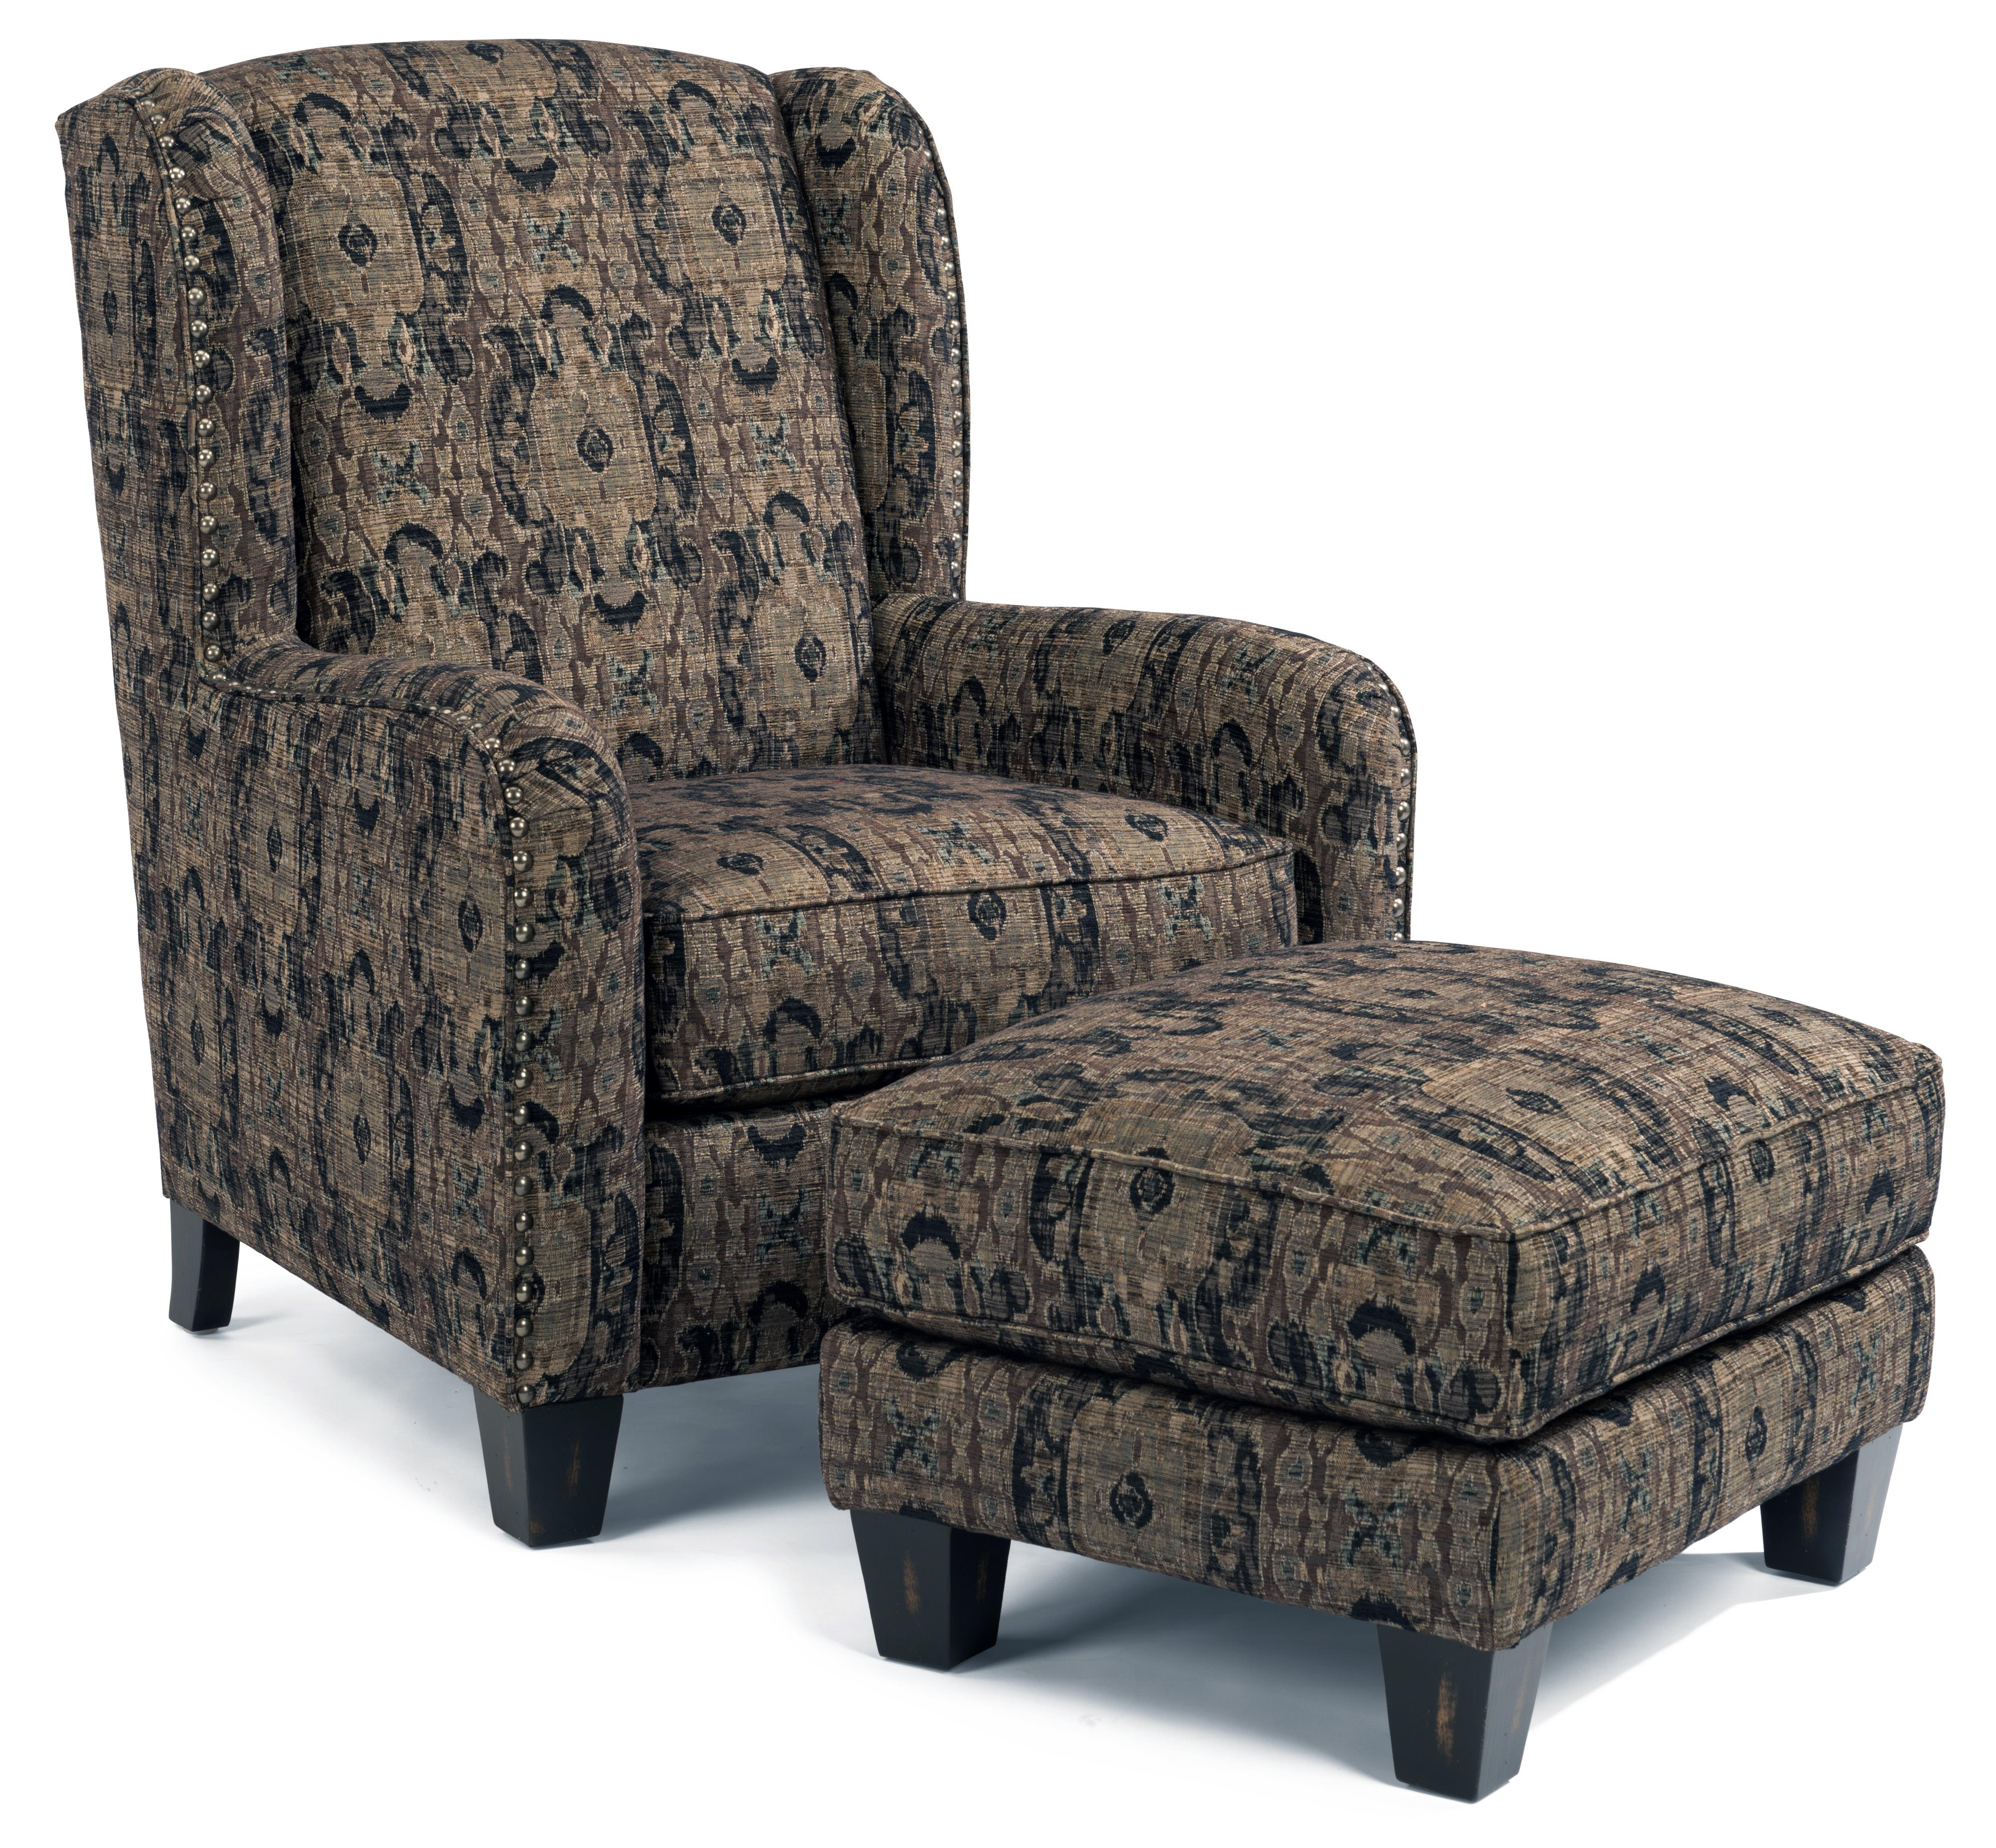 Accents Perth Chair and Ottoman by Flexsteel at Michael Alan Furniture & Design